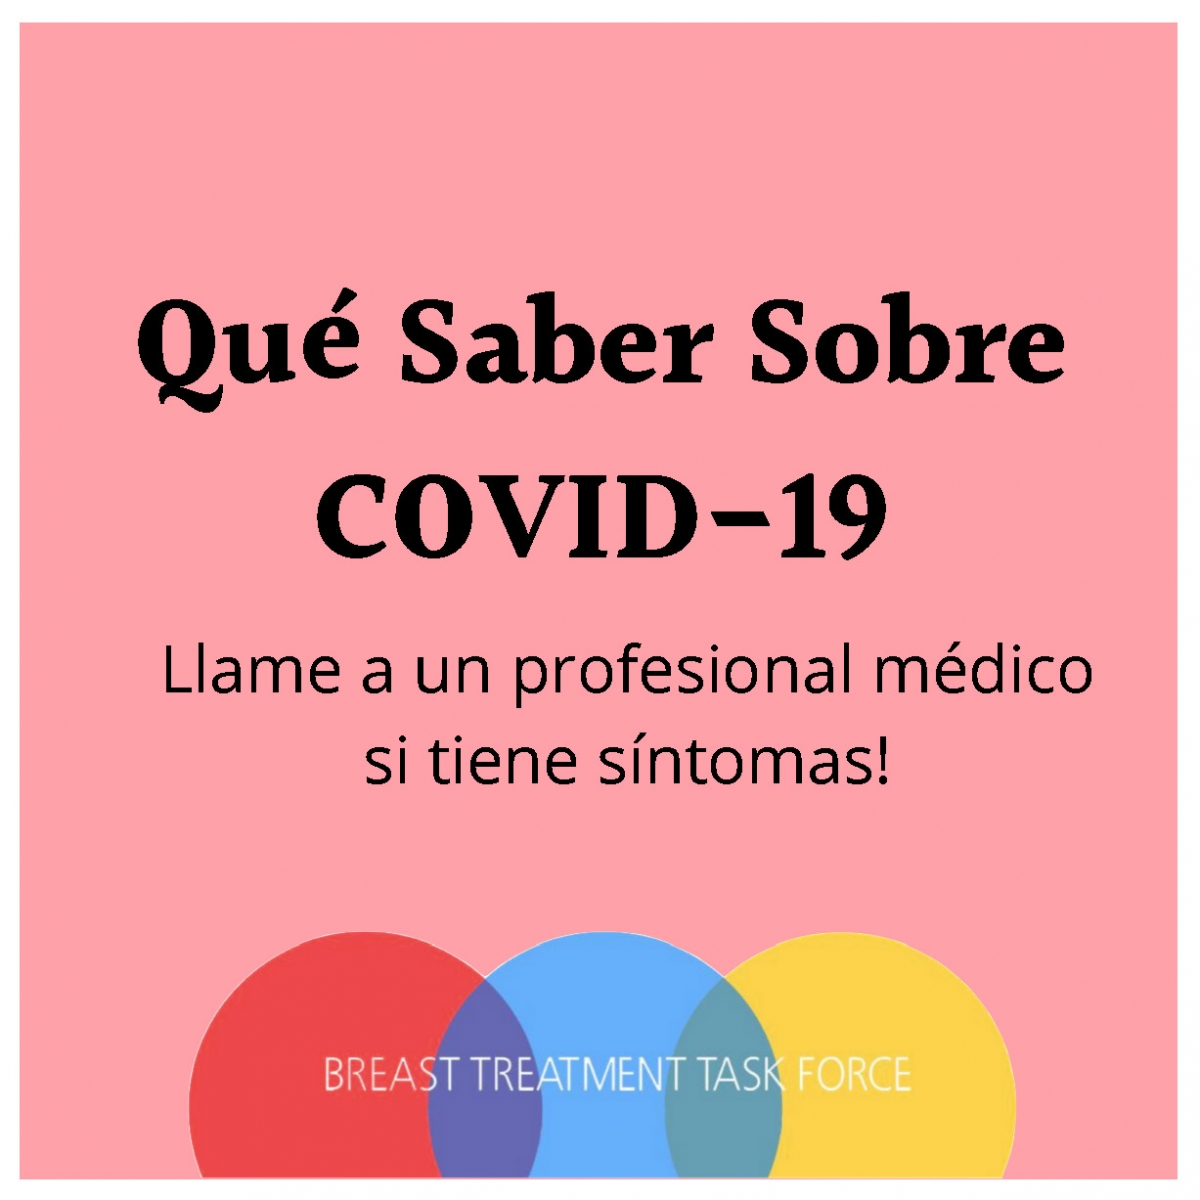 COVID-19_Infographic_Spanish_Page_2